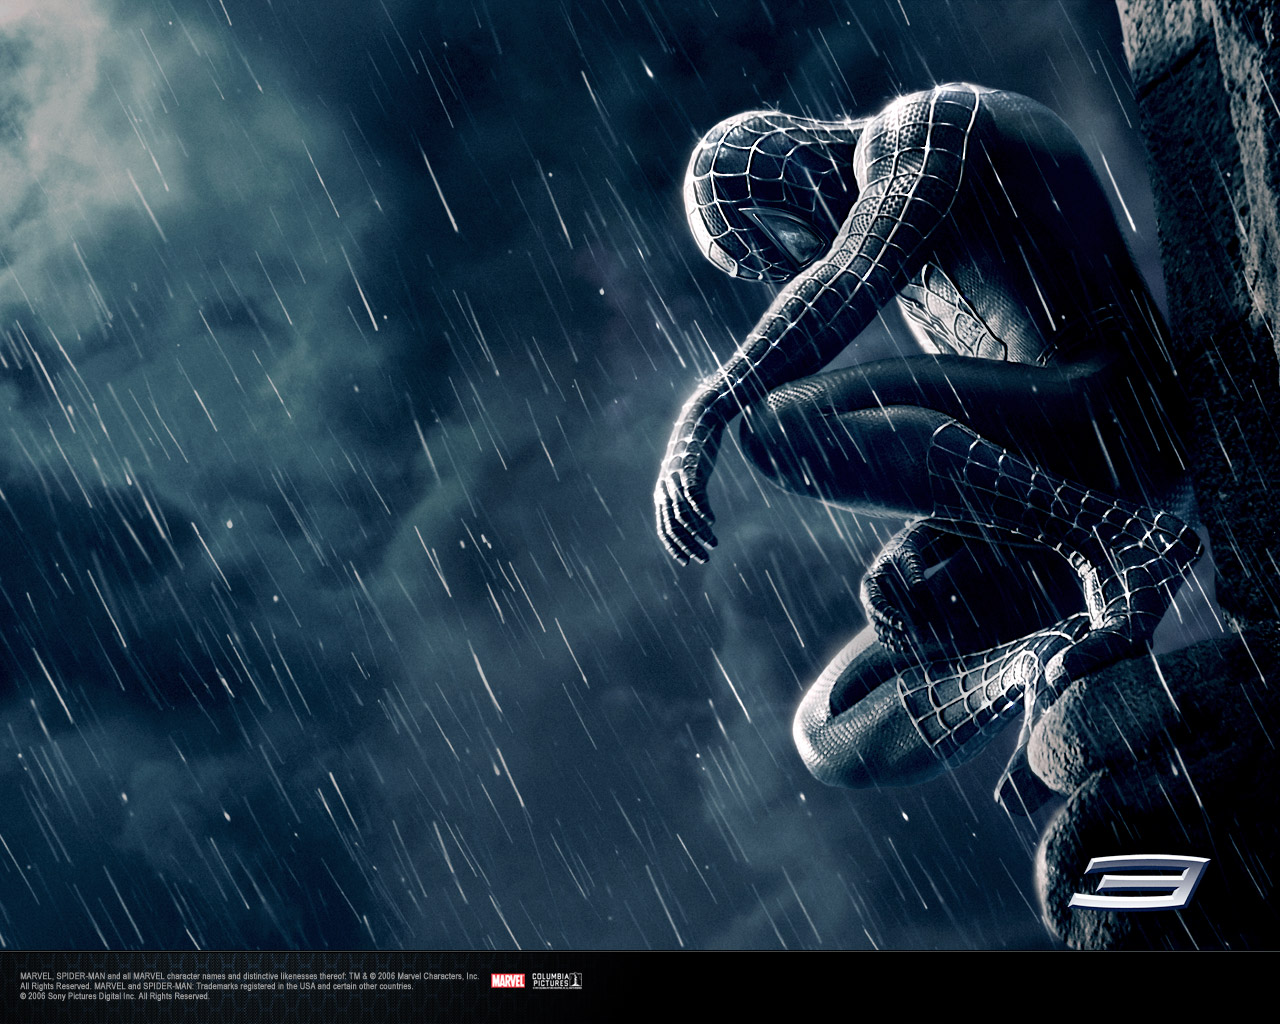 http://1.bp.blogspot.com/-oq29sIUhc_Q/Tawp6Ai6B_I/AAAAAAAAC80/peZVrVMaKuI/s1600/Spiderman%2Bwallpaper%2Bdownload%2Bfree%2Bspiderman%2B3.jpg